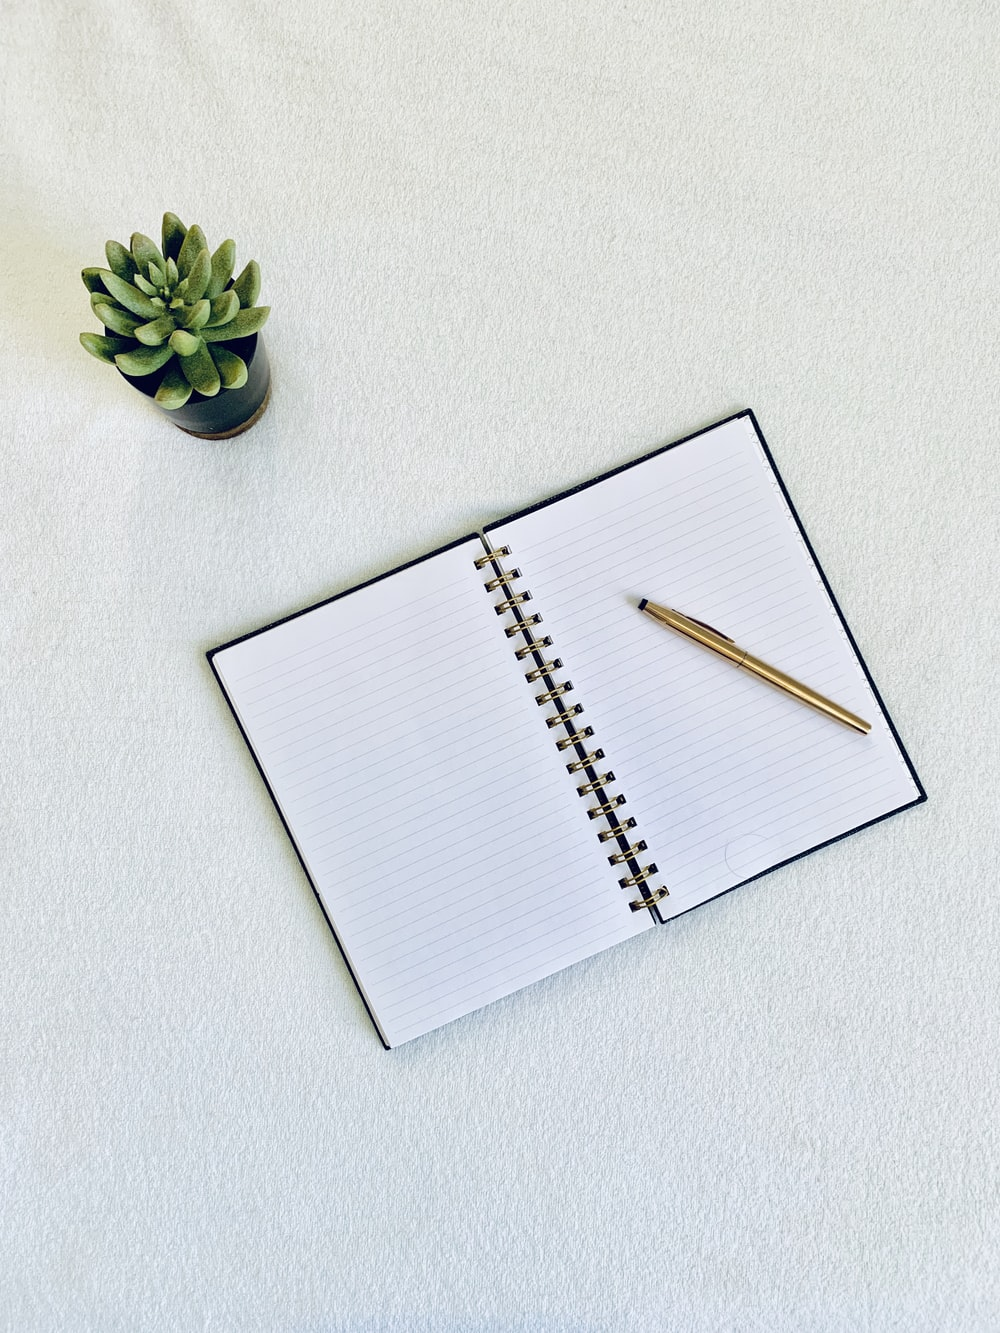 flat-lay photography of a pen on top of a notebook